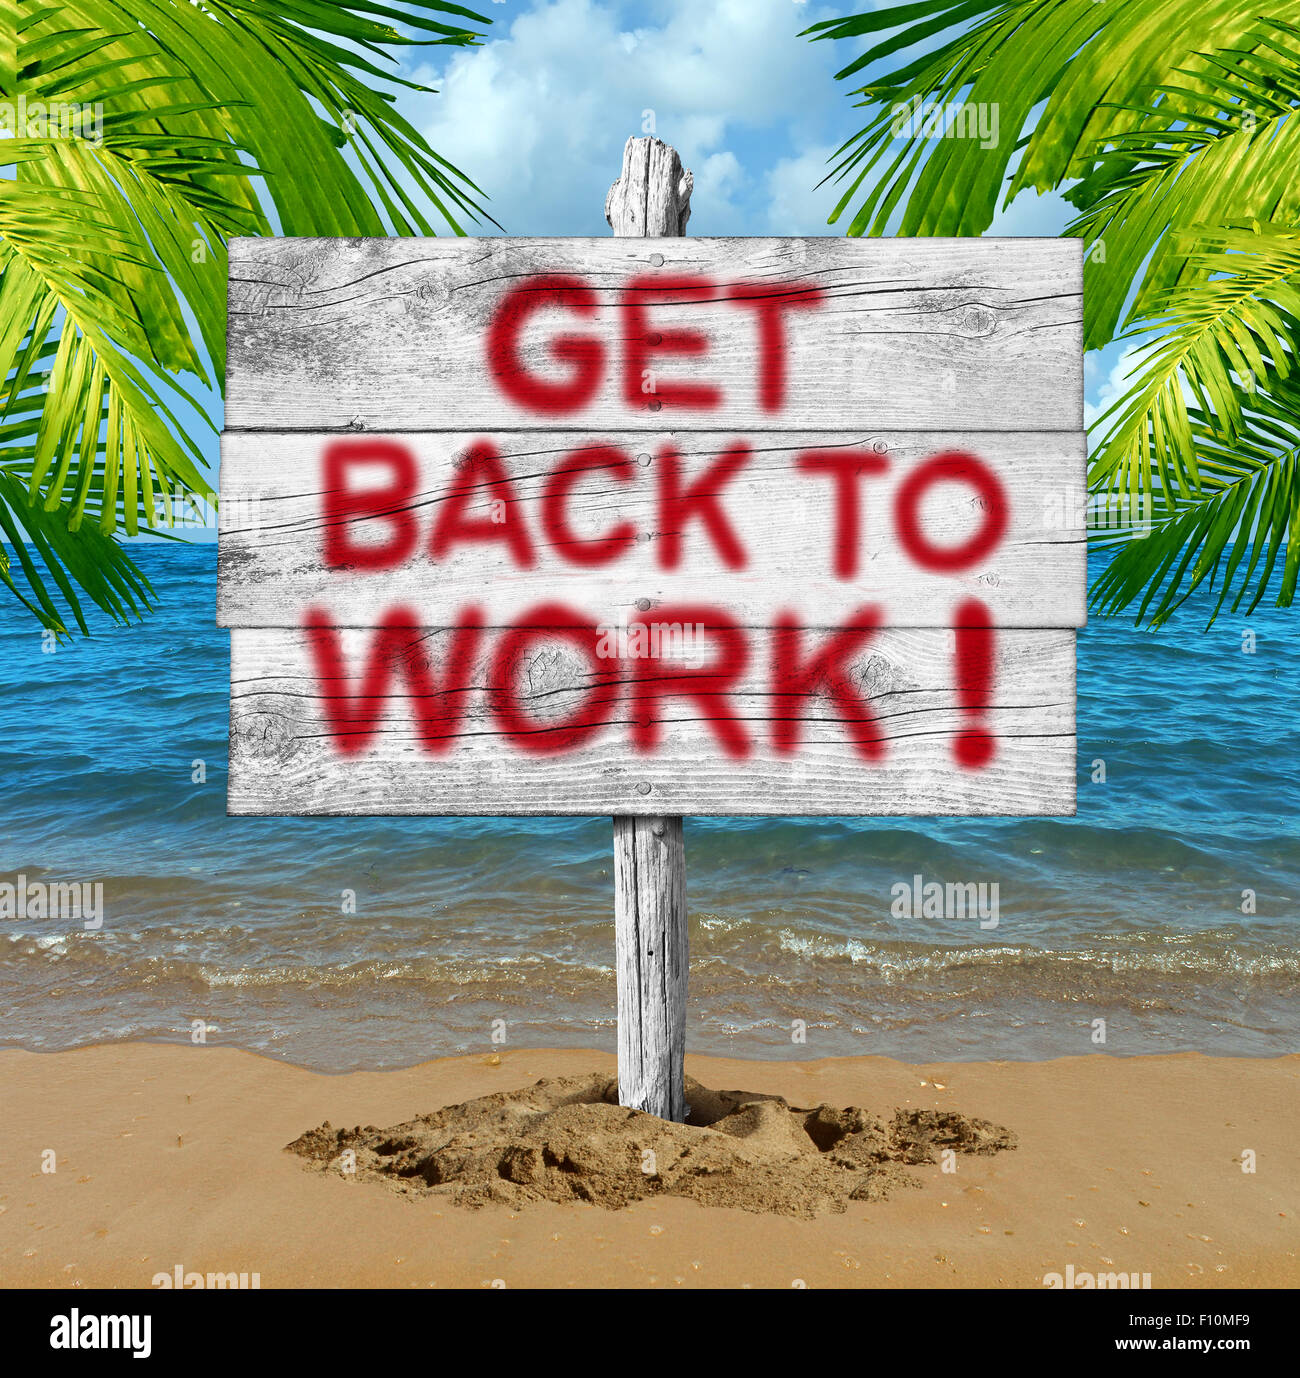 Get Back To Work Business Motivation Concept As A Vacation Beach Sign With Text Sprayed On The Billboard Symbol For End Of Holidays And Return